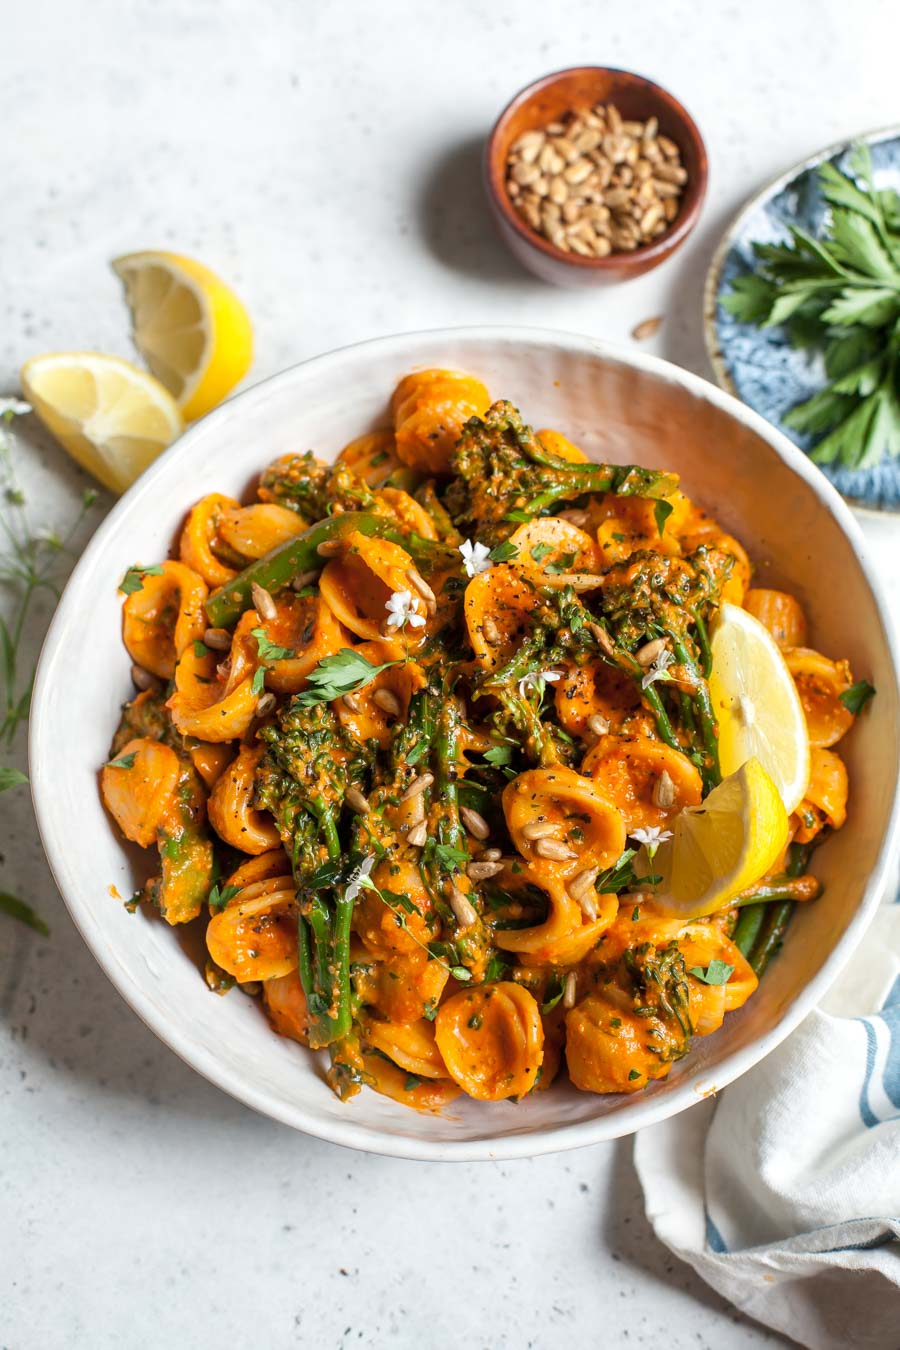 Pasta with Sunflower Seed Romesco